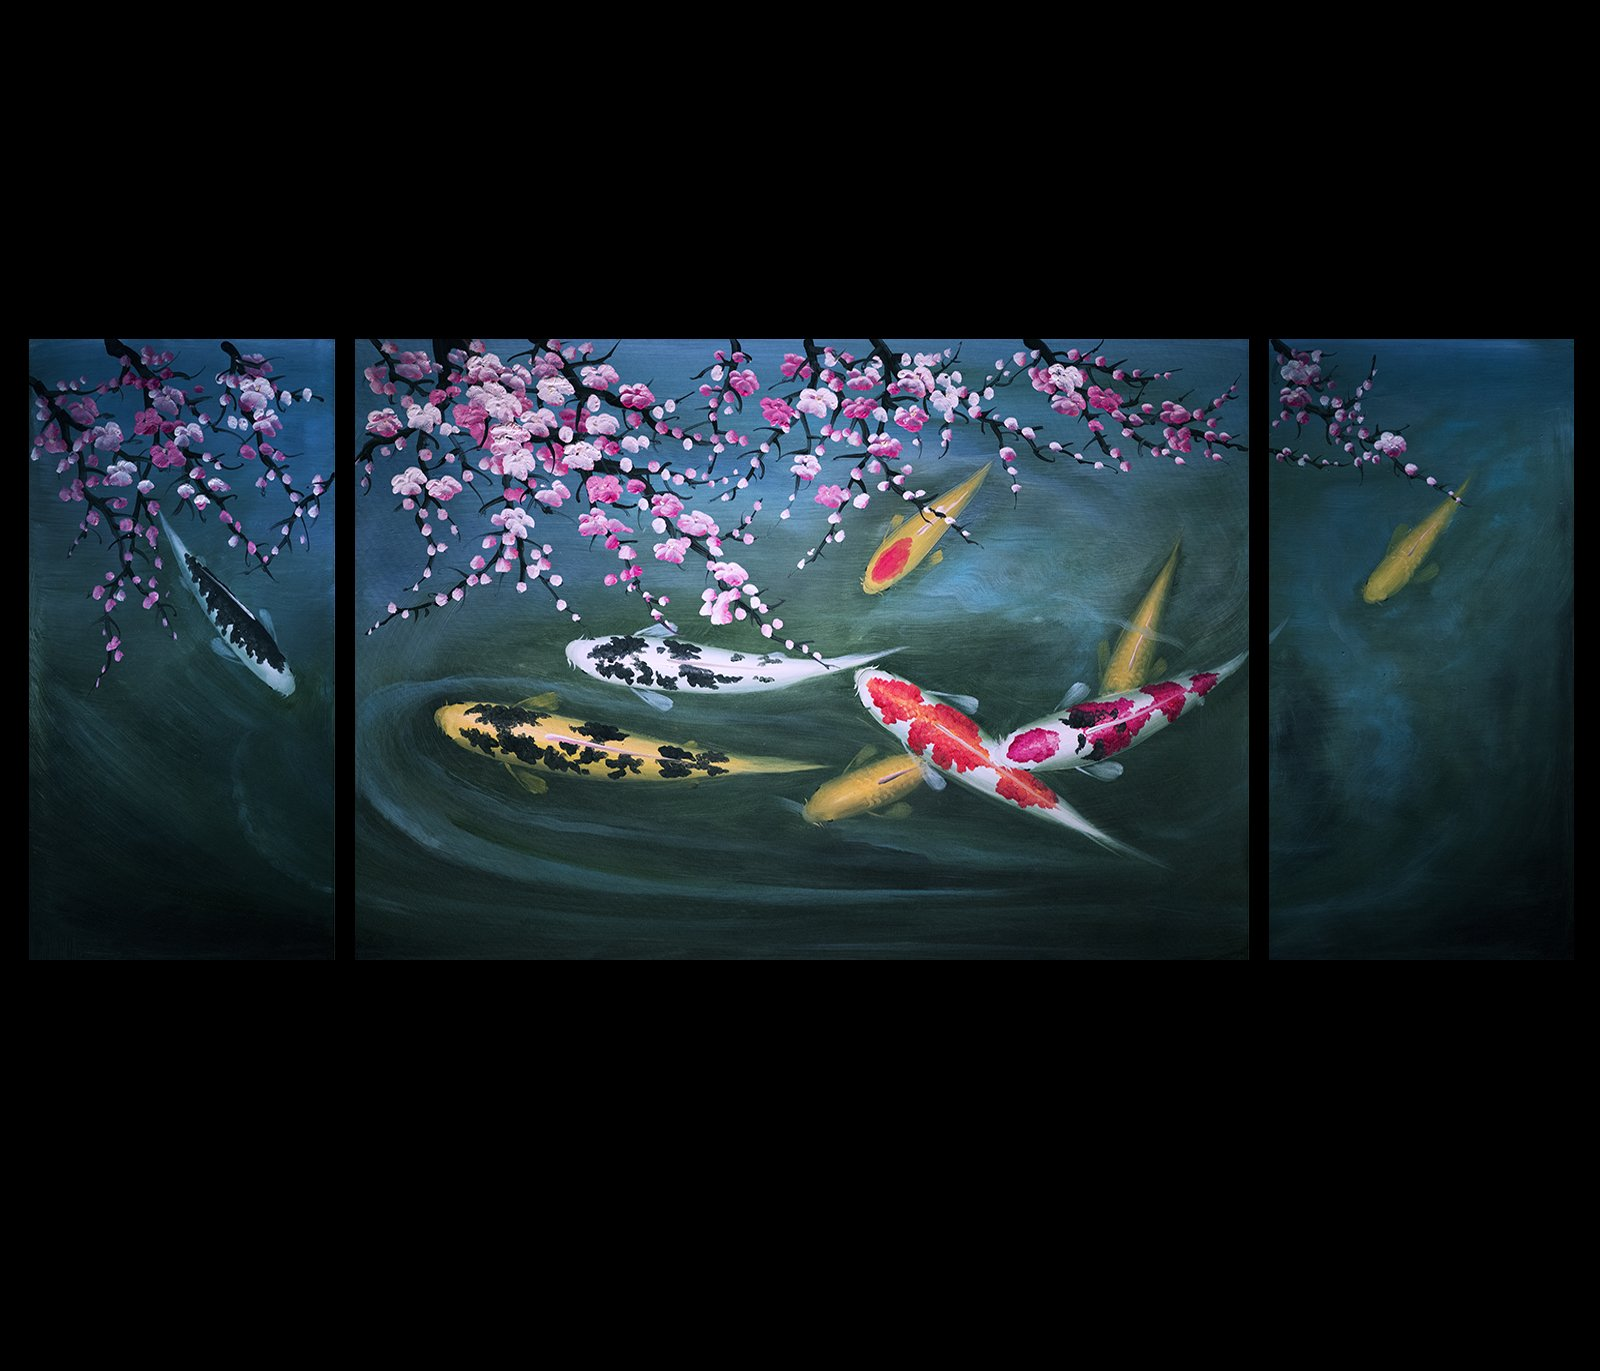 Koi Fish Wall Art Contemporary Art Prints Abstract Art Modern Wall Art Décor Canvas Prints by Fengshui-paintings.com